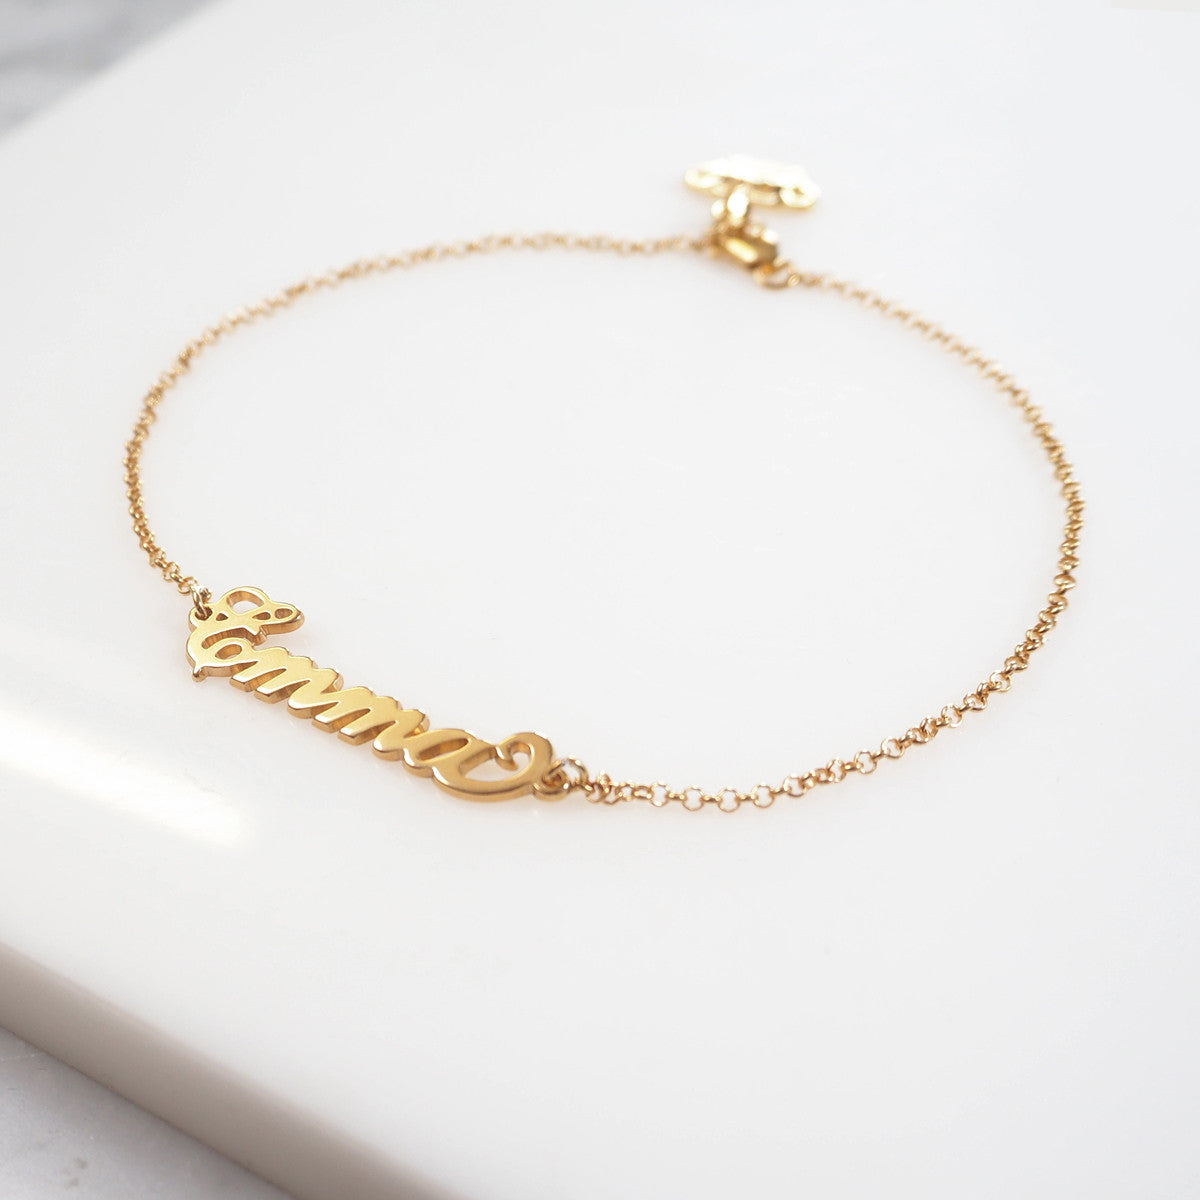 in family from girl coin anklets fringed female women jewelry simple fashion accessories bracelets name summer spring saatleri wind item anklet